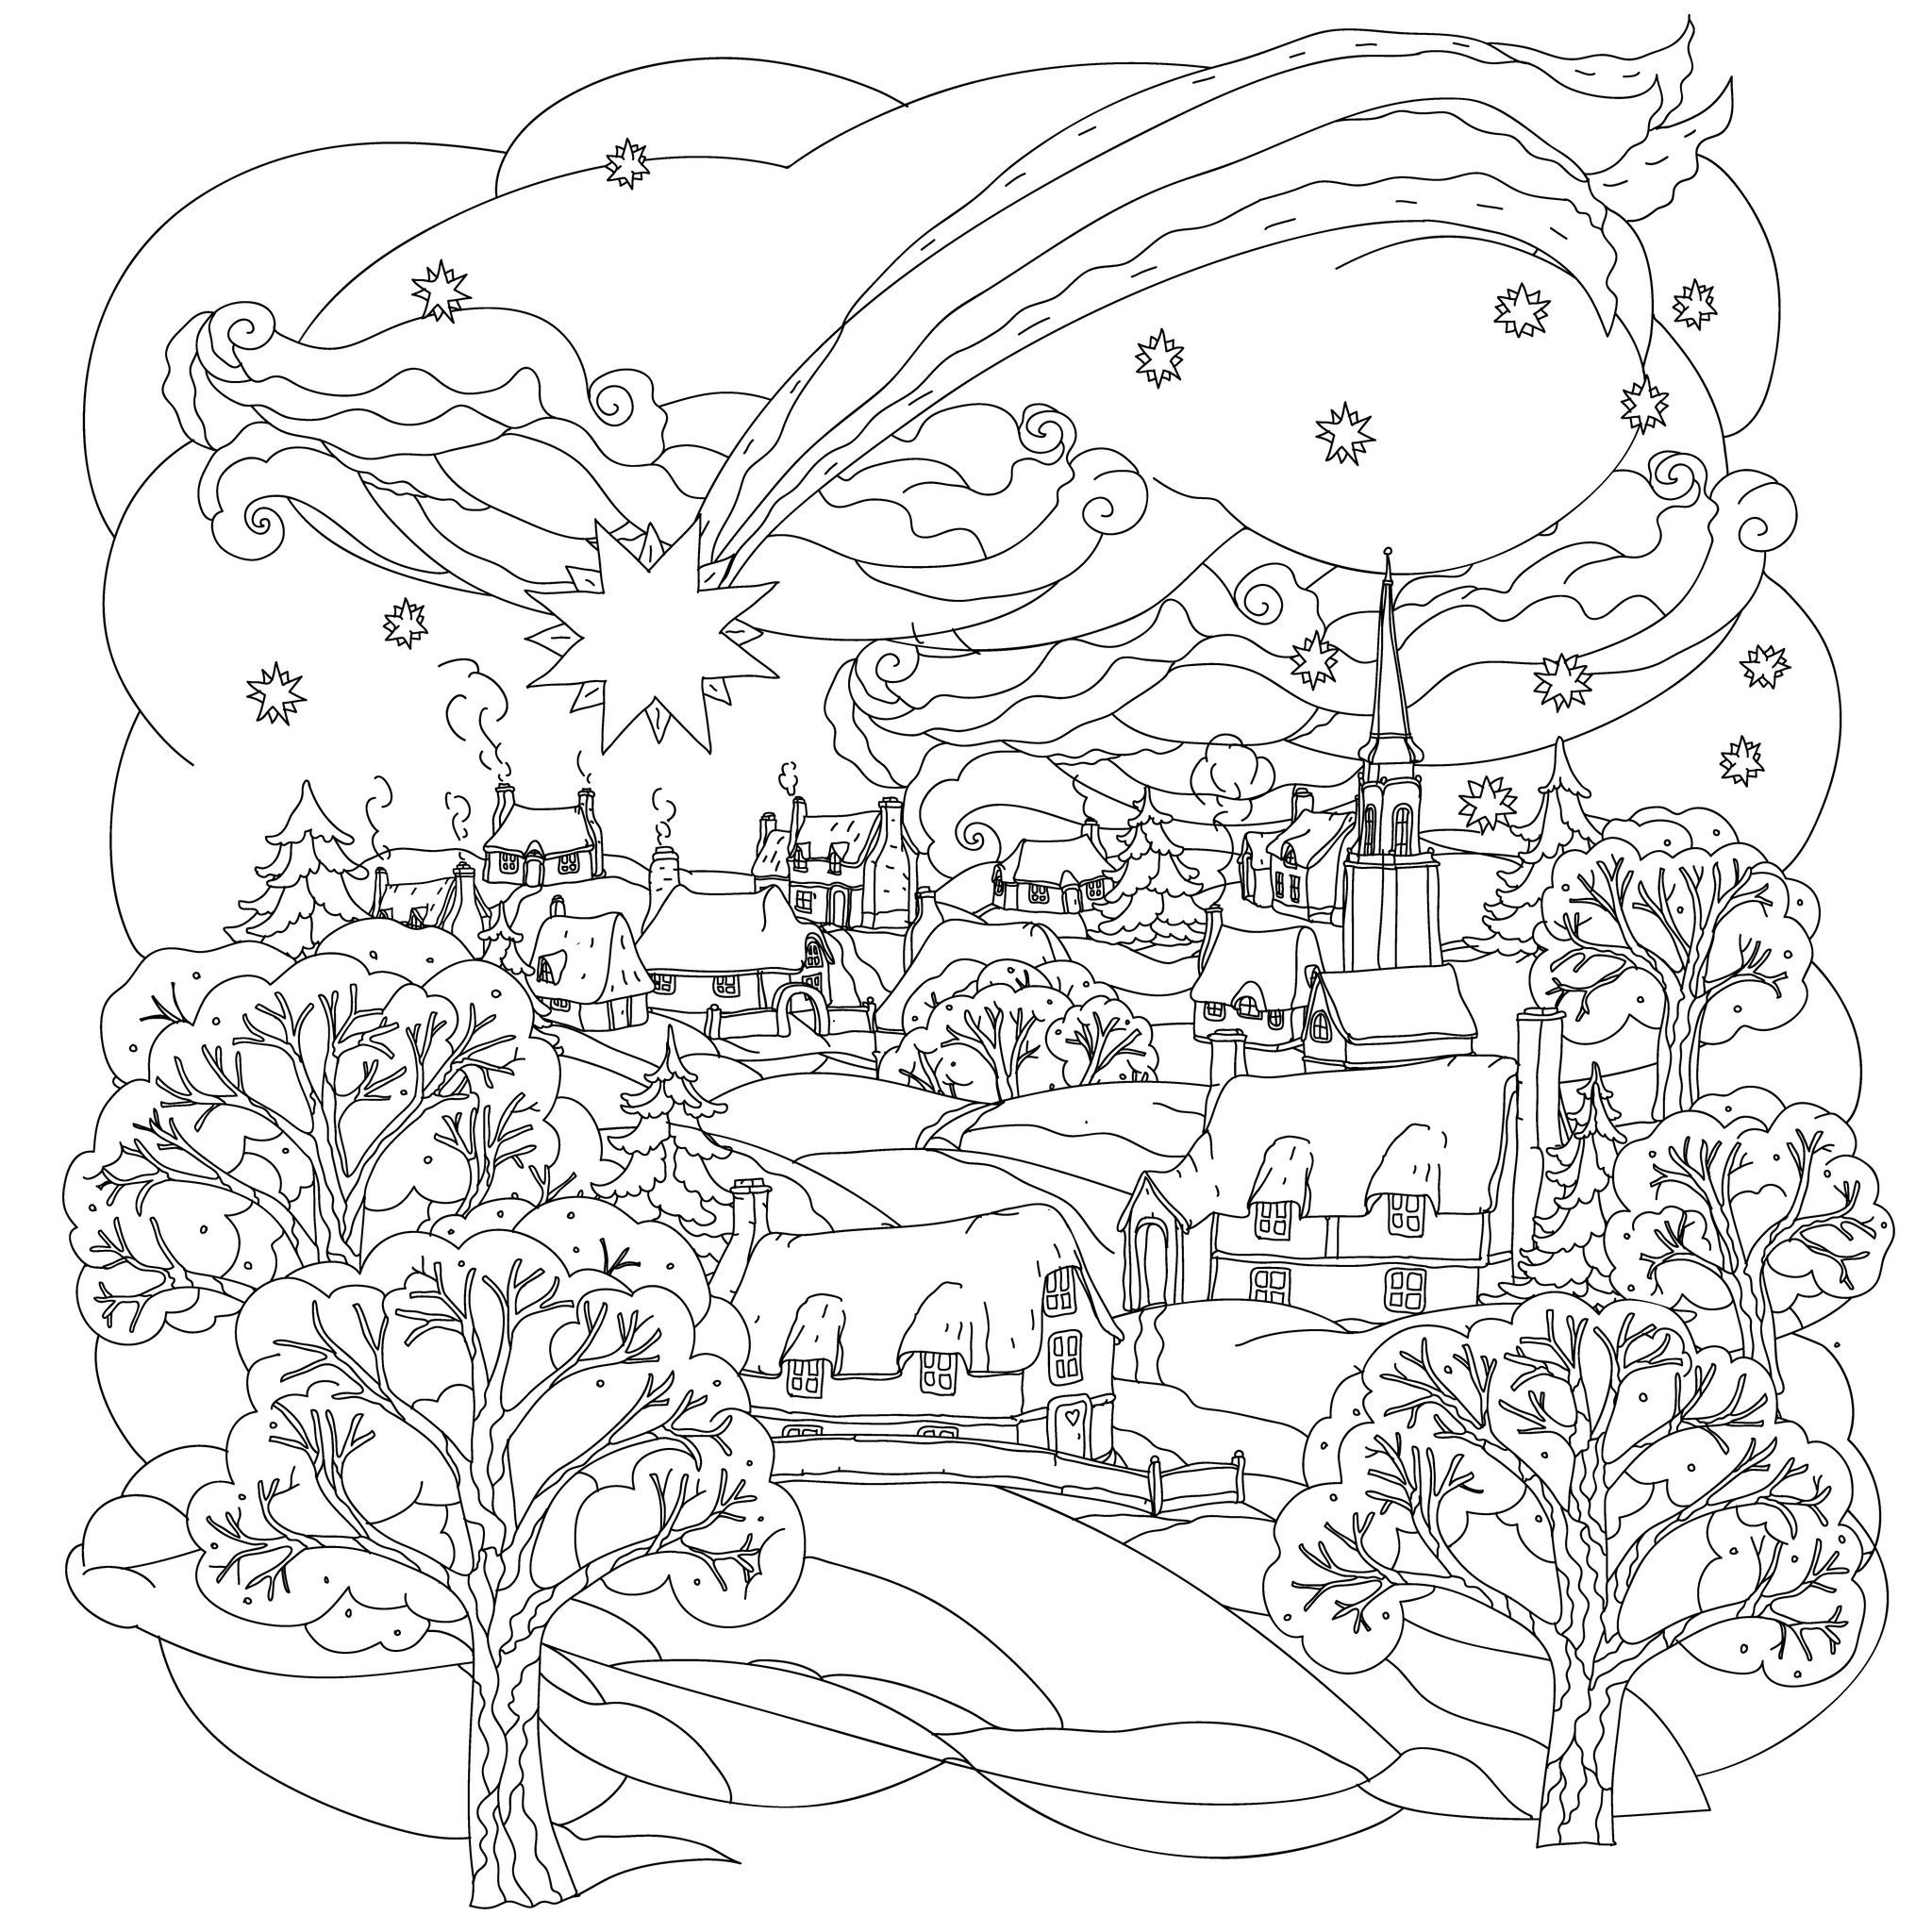 free online coloring pages for adults christmas free printable christmas coloring pages for adults christmas pages adults free online for coloring